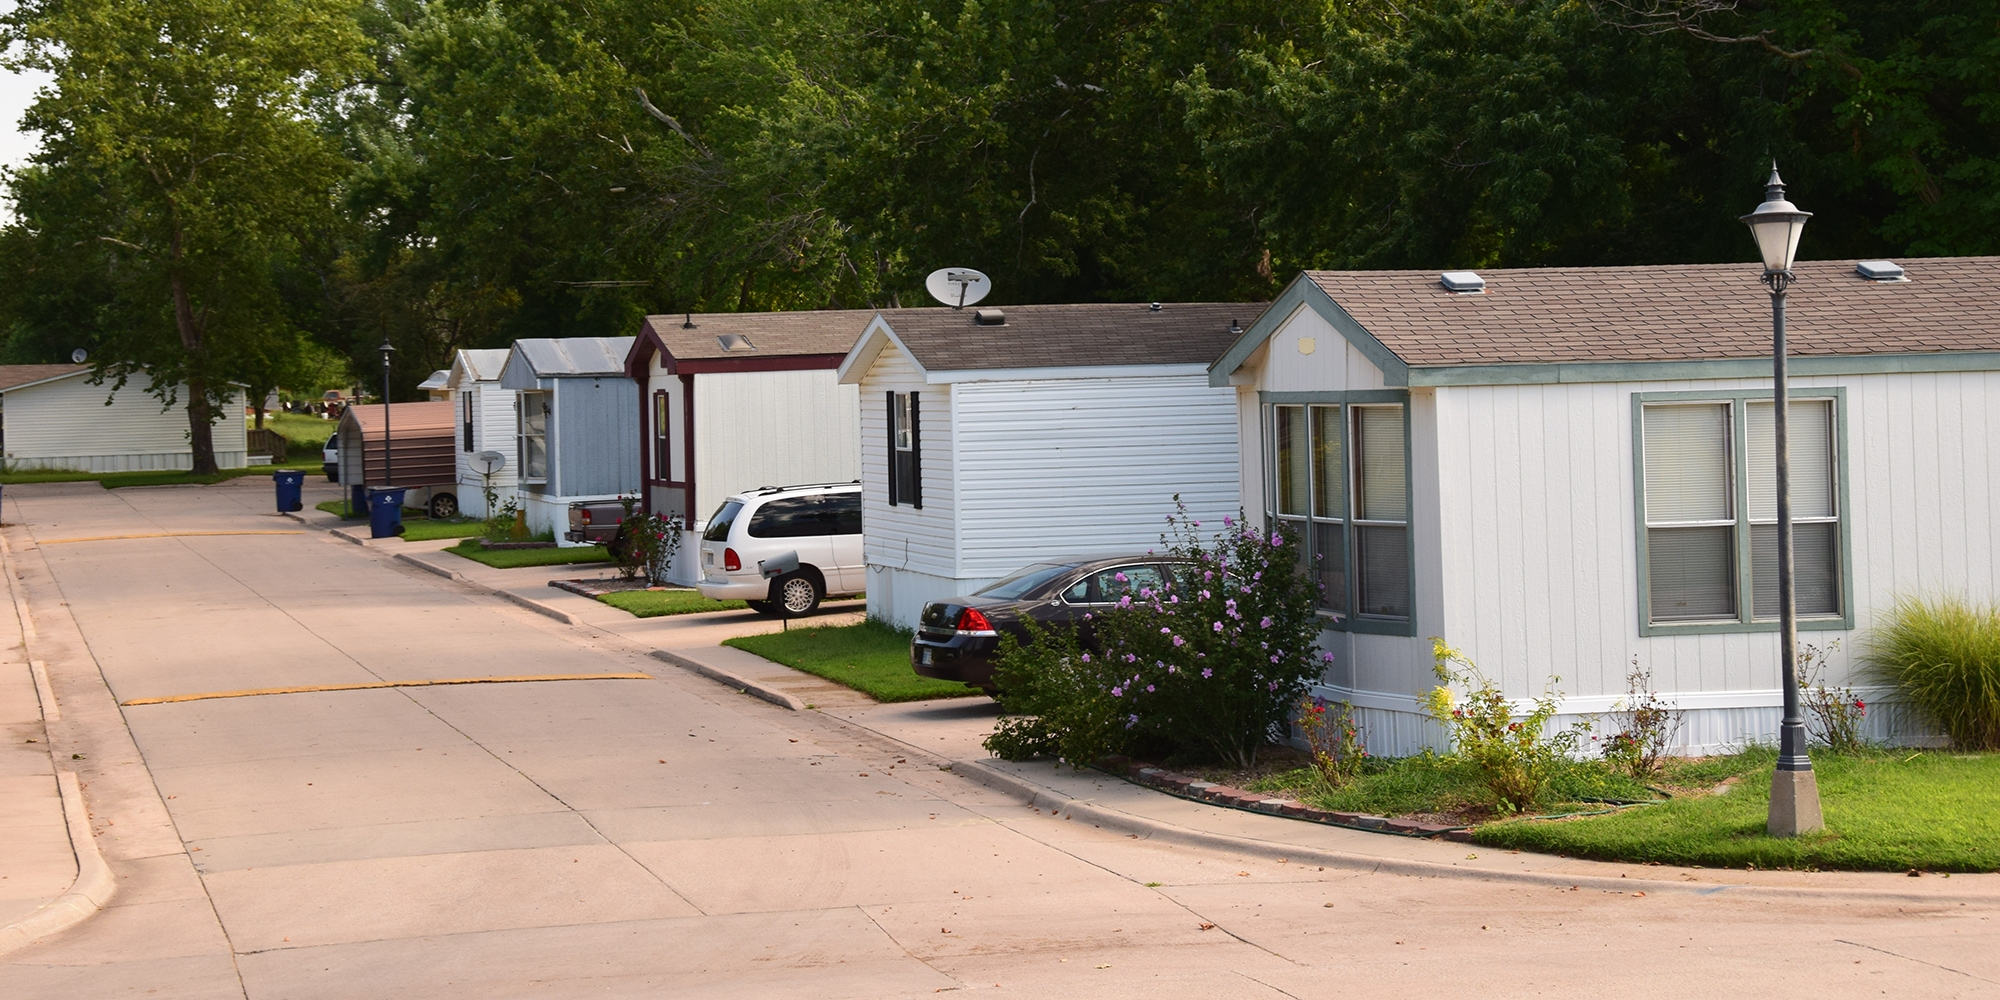 El Caudillo: Manufactured Homes in Wichita, KS | Bays on mhvillage colorado springs colorado, mobile home trailer frame, manufactured homes colorado,